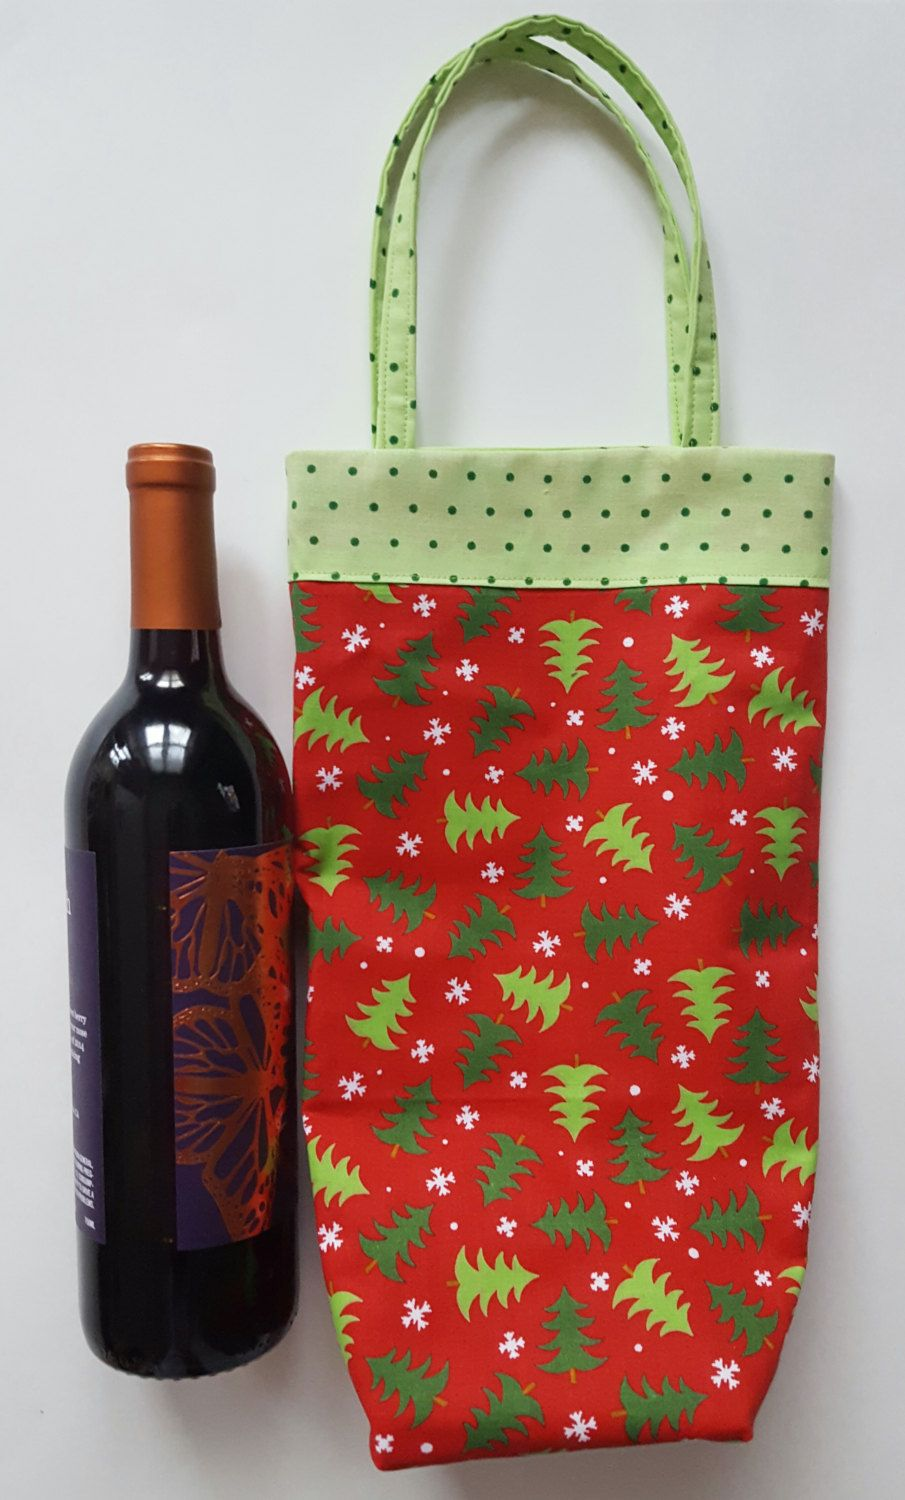 Wine Tote Christmas Wine Bag Holiday Wine Tote Wine Bag Christmas Gift Bag Lined Wine Bag Holiday Gift B Wine Bag Christmas Wine Bags Christmas Gift Bags